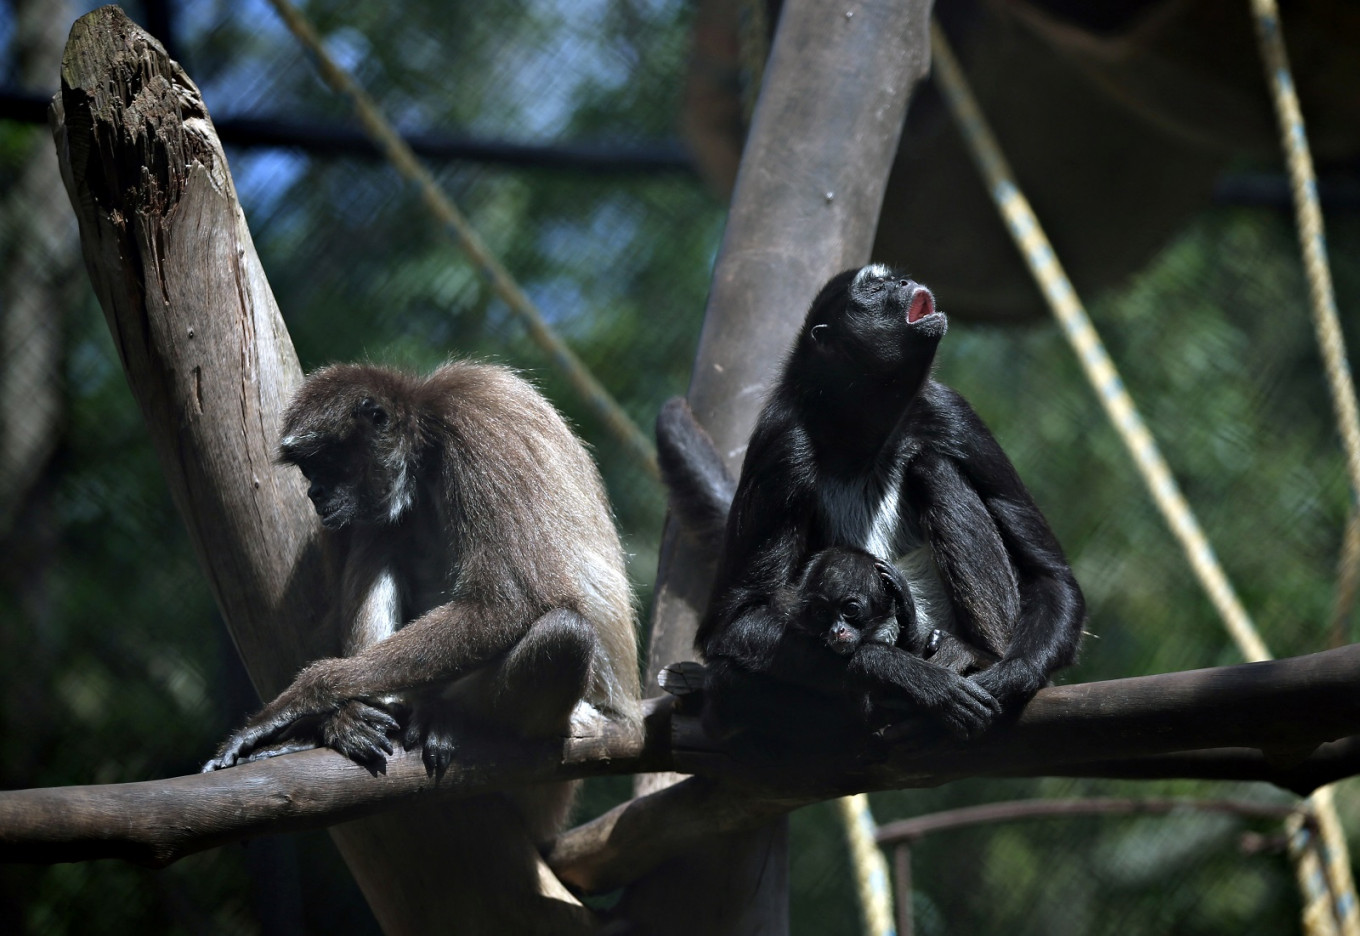 Covid, Quarantine among names suggested for newborn animals in Colombian zoo